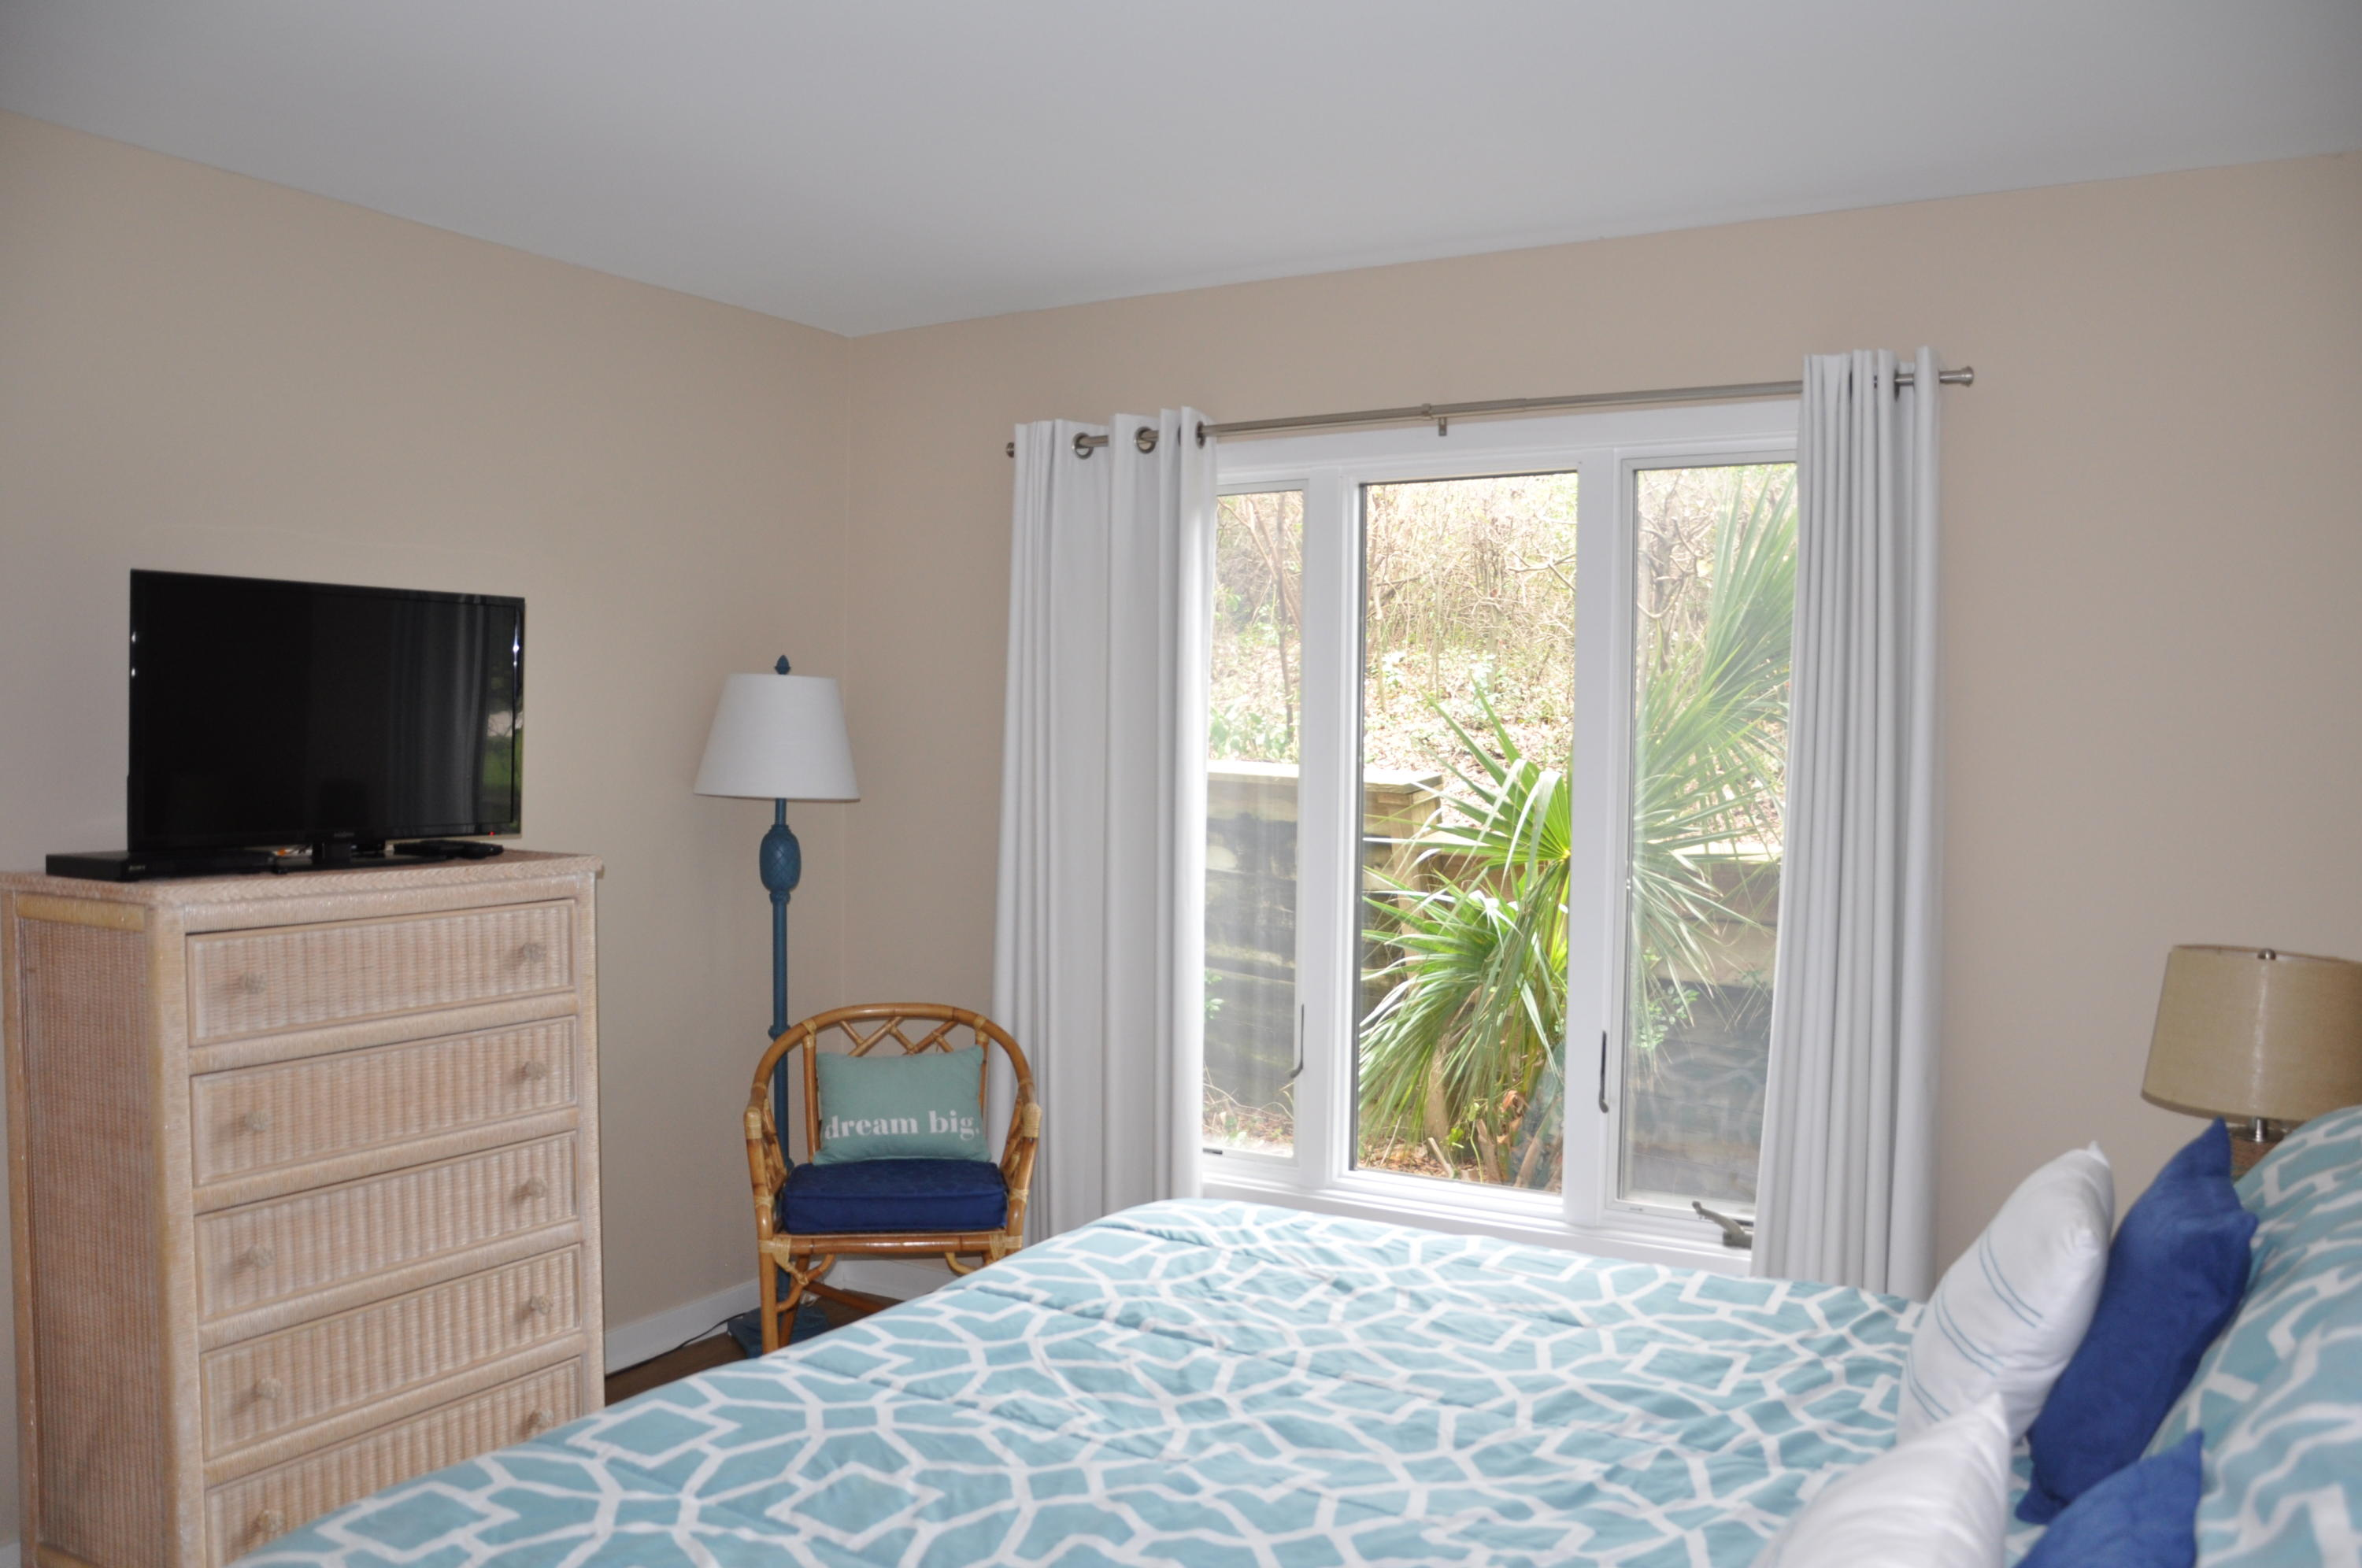 Fairway Villas Homes For Sale - 25 Fairway Dunes (1/6 Share), Isle of Palms, SC - 22